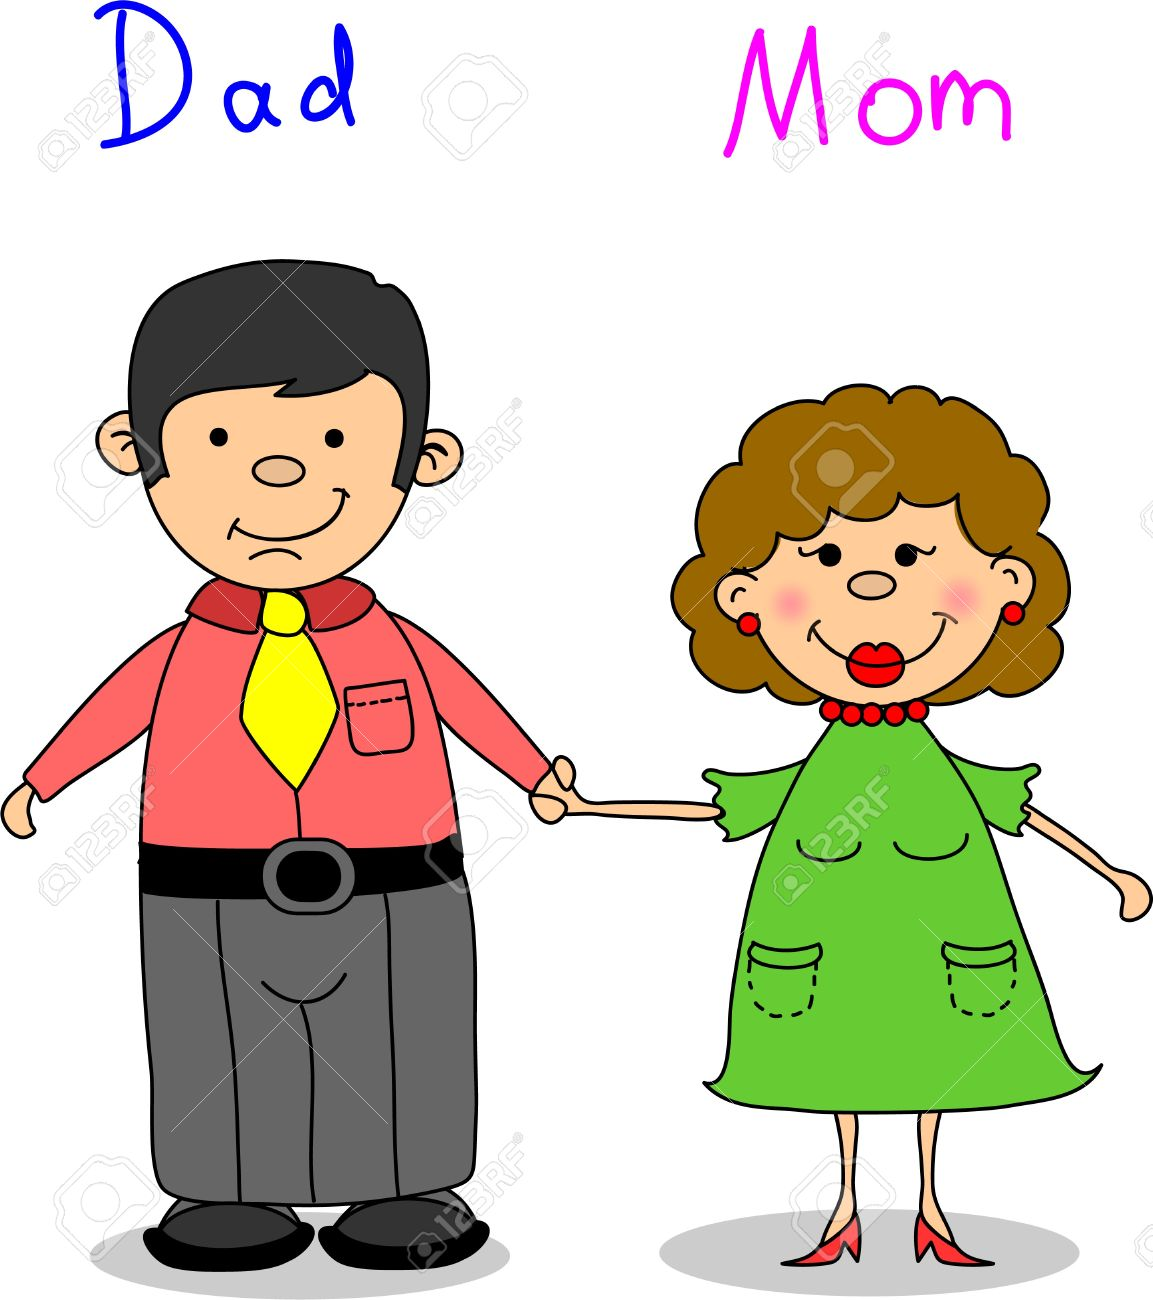 Clipart mama papa graphic library download Mama papa kind clipart - ClipartFox graphic library download